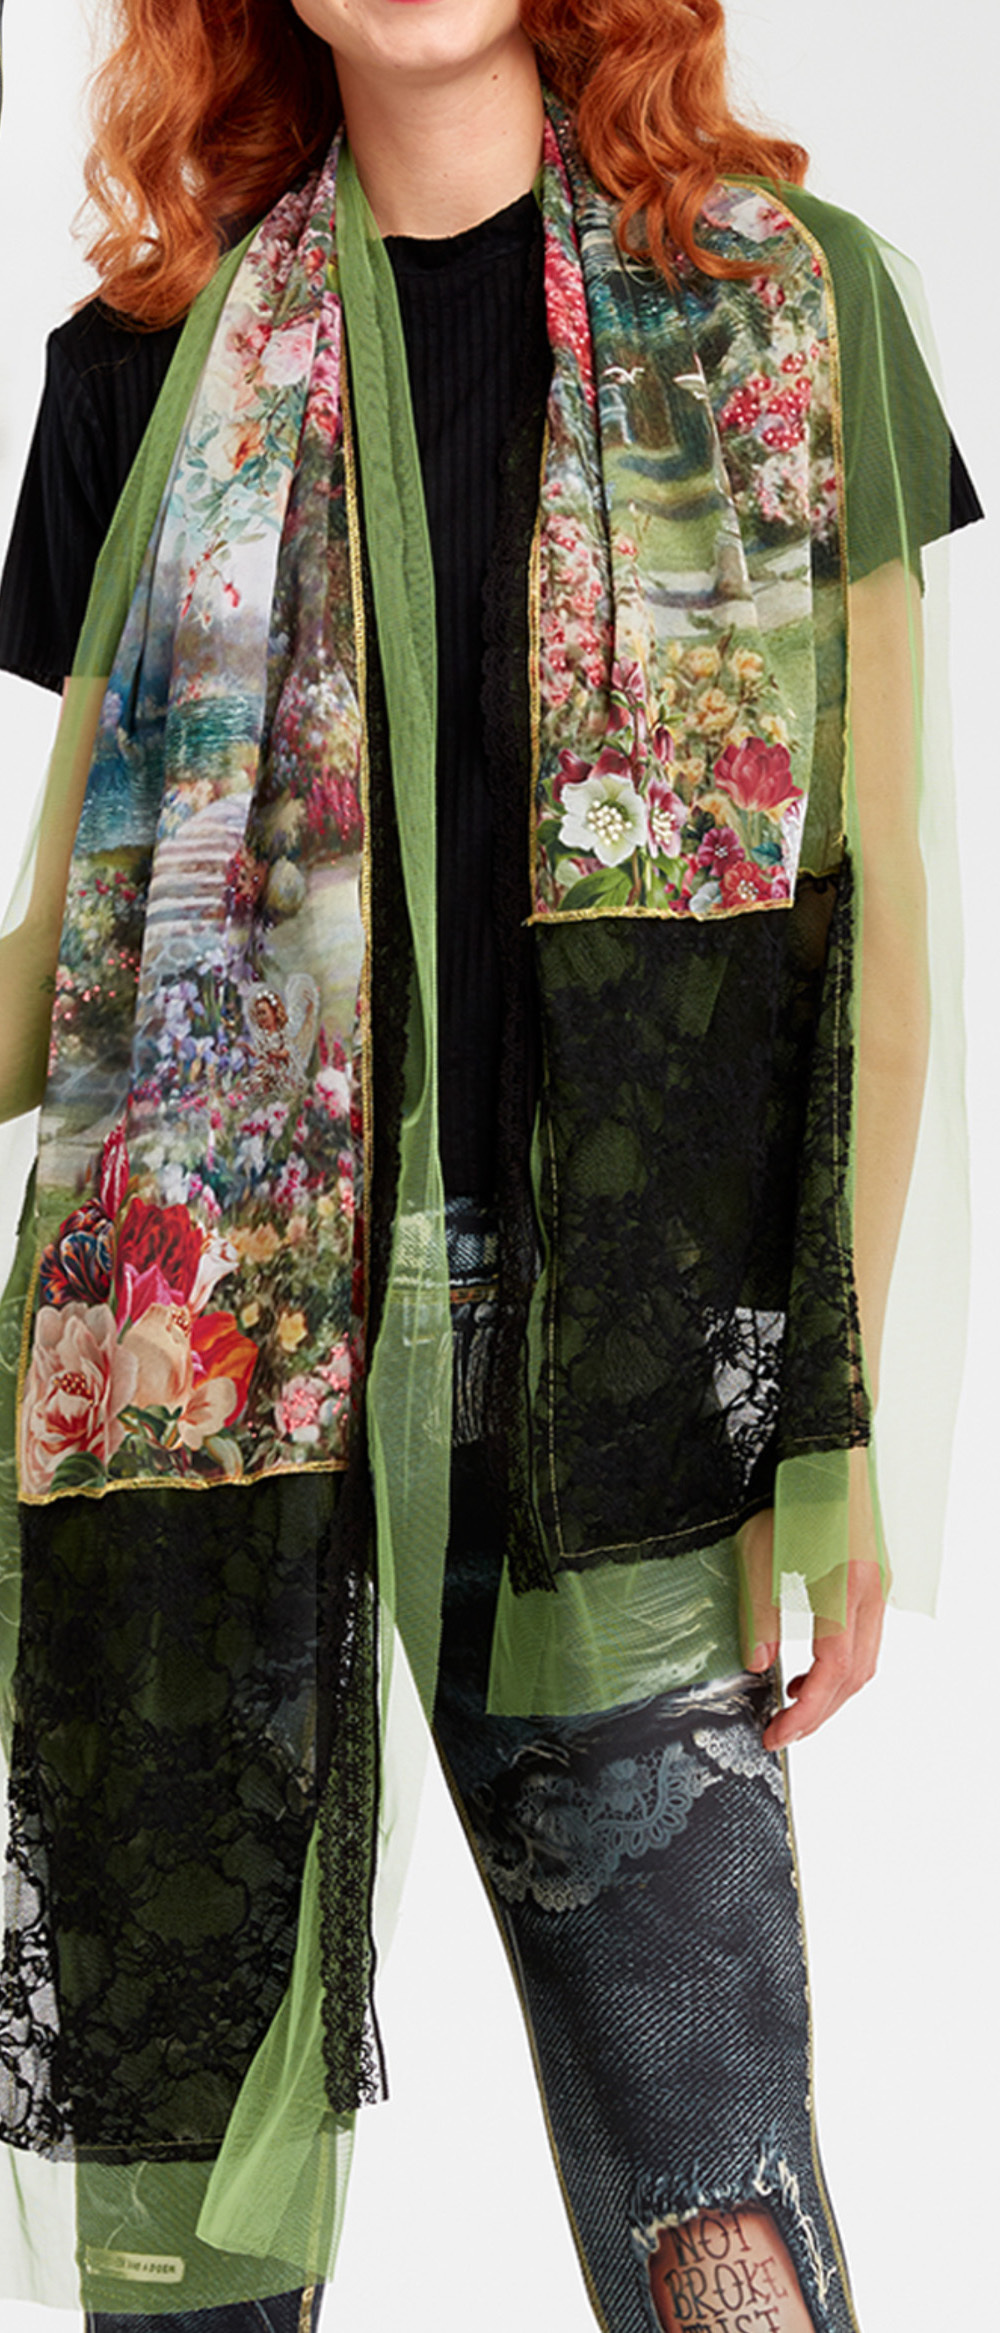 IPNG: In Paradiso Cherry Carnation Scarf